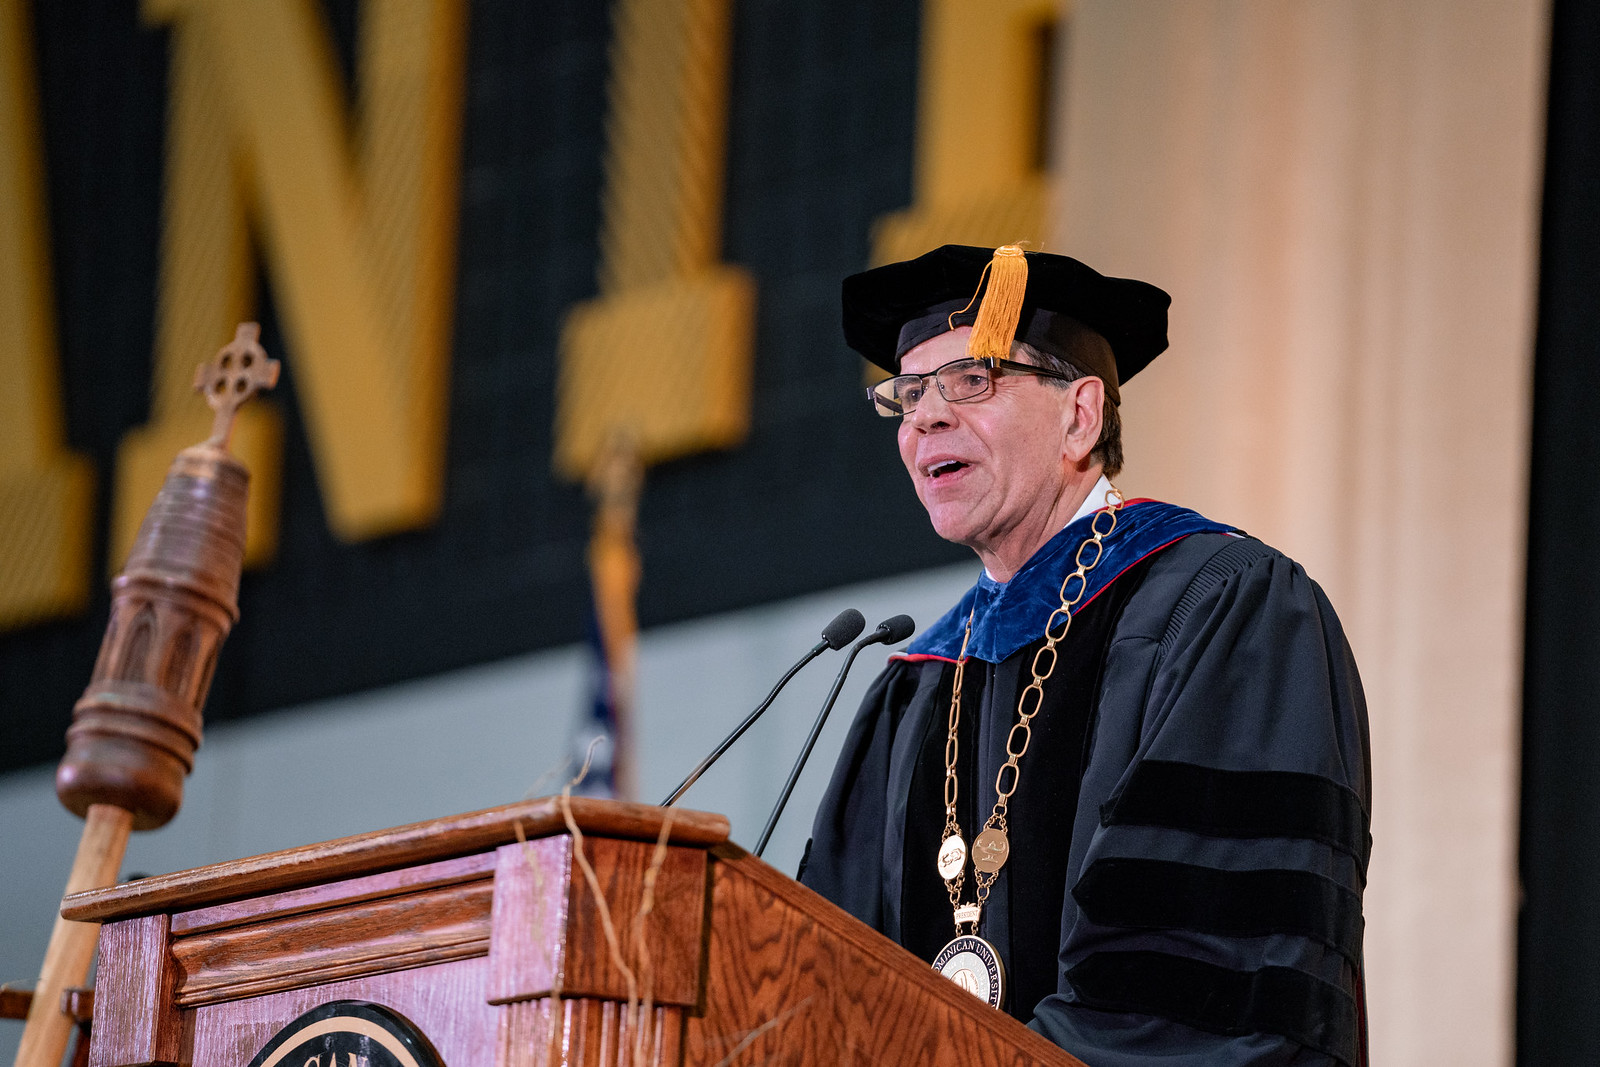 The Inauguration of Dr. Robert A. Gervasi